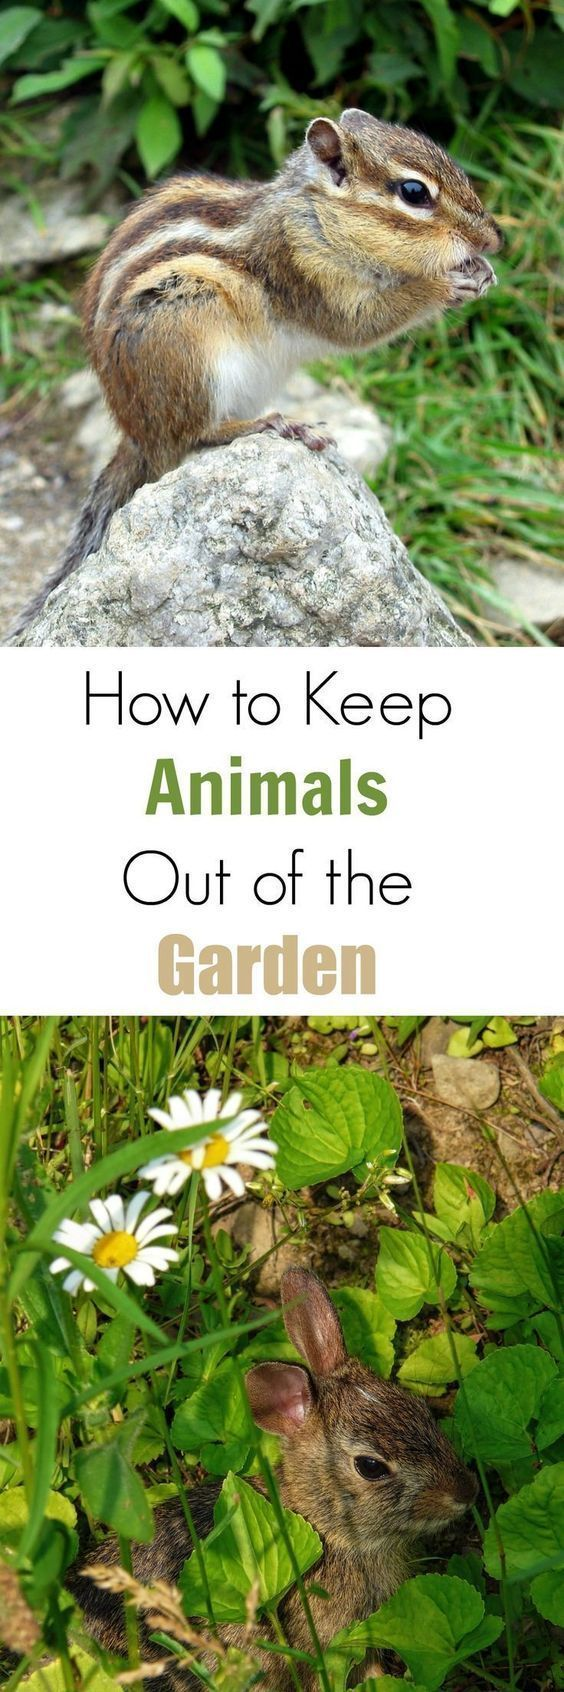 4919 best gardening tips inspiration images on pinterest for How to protect your garden from animals